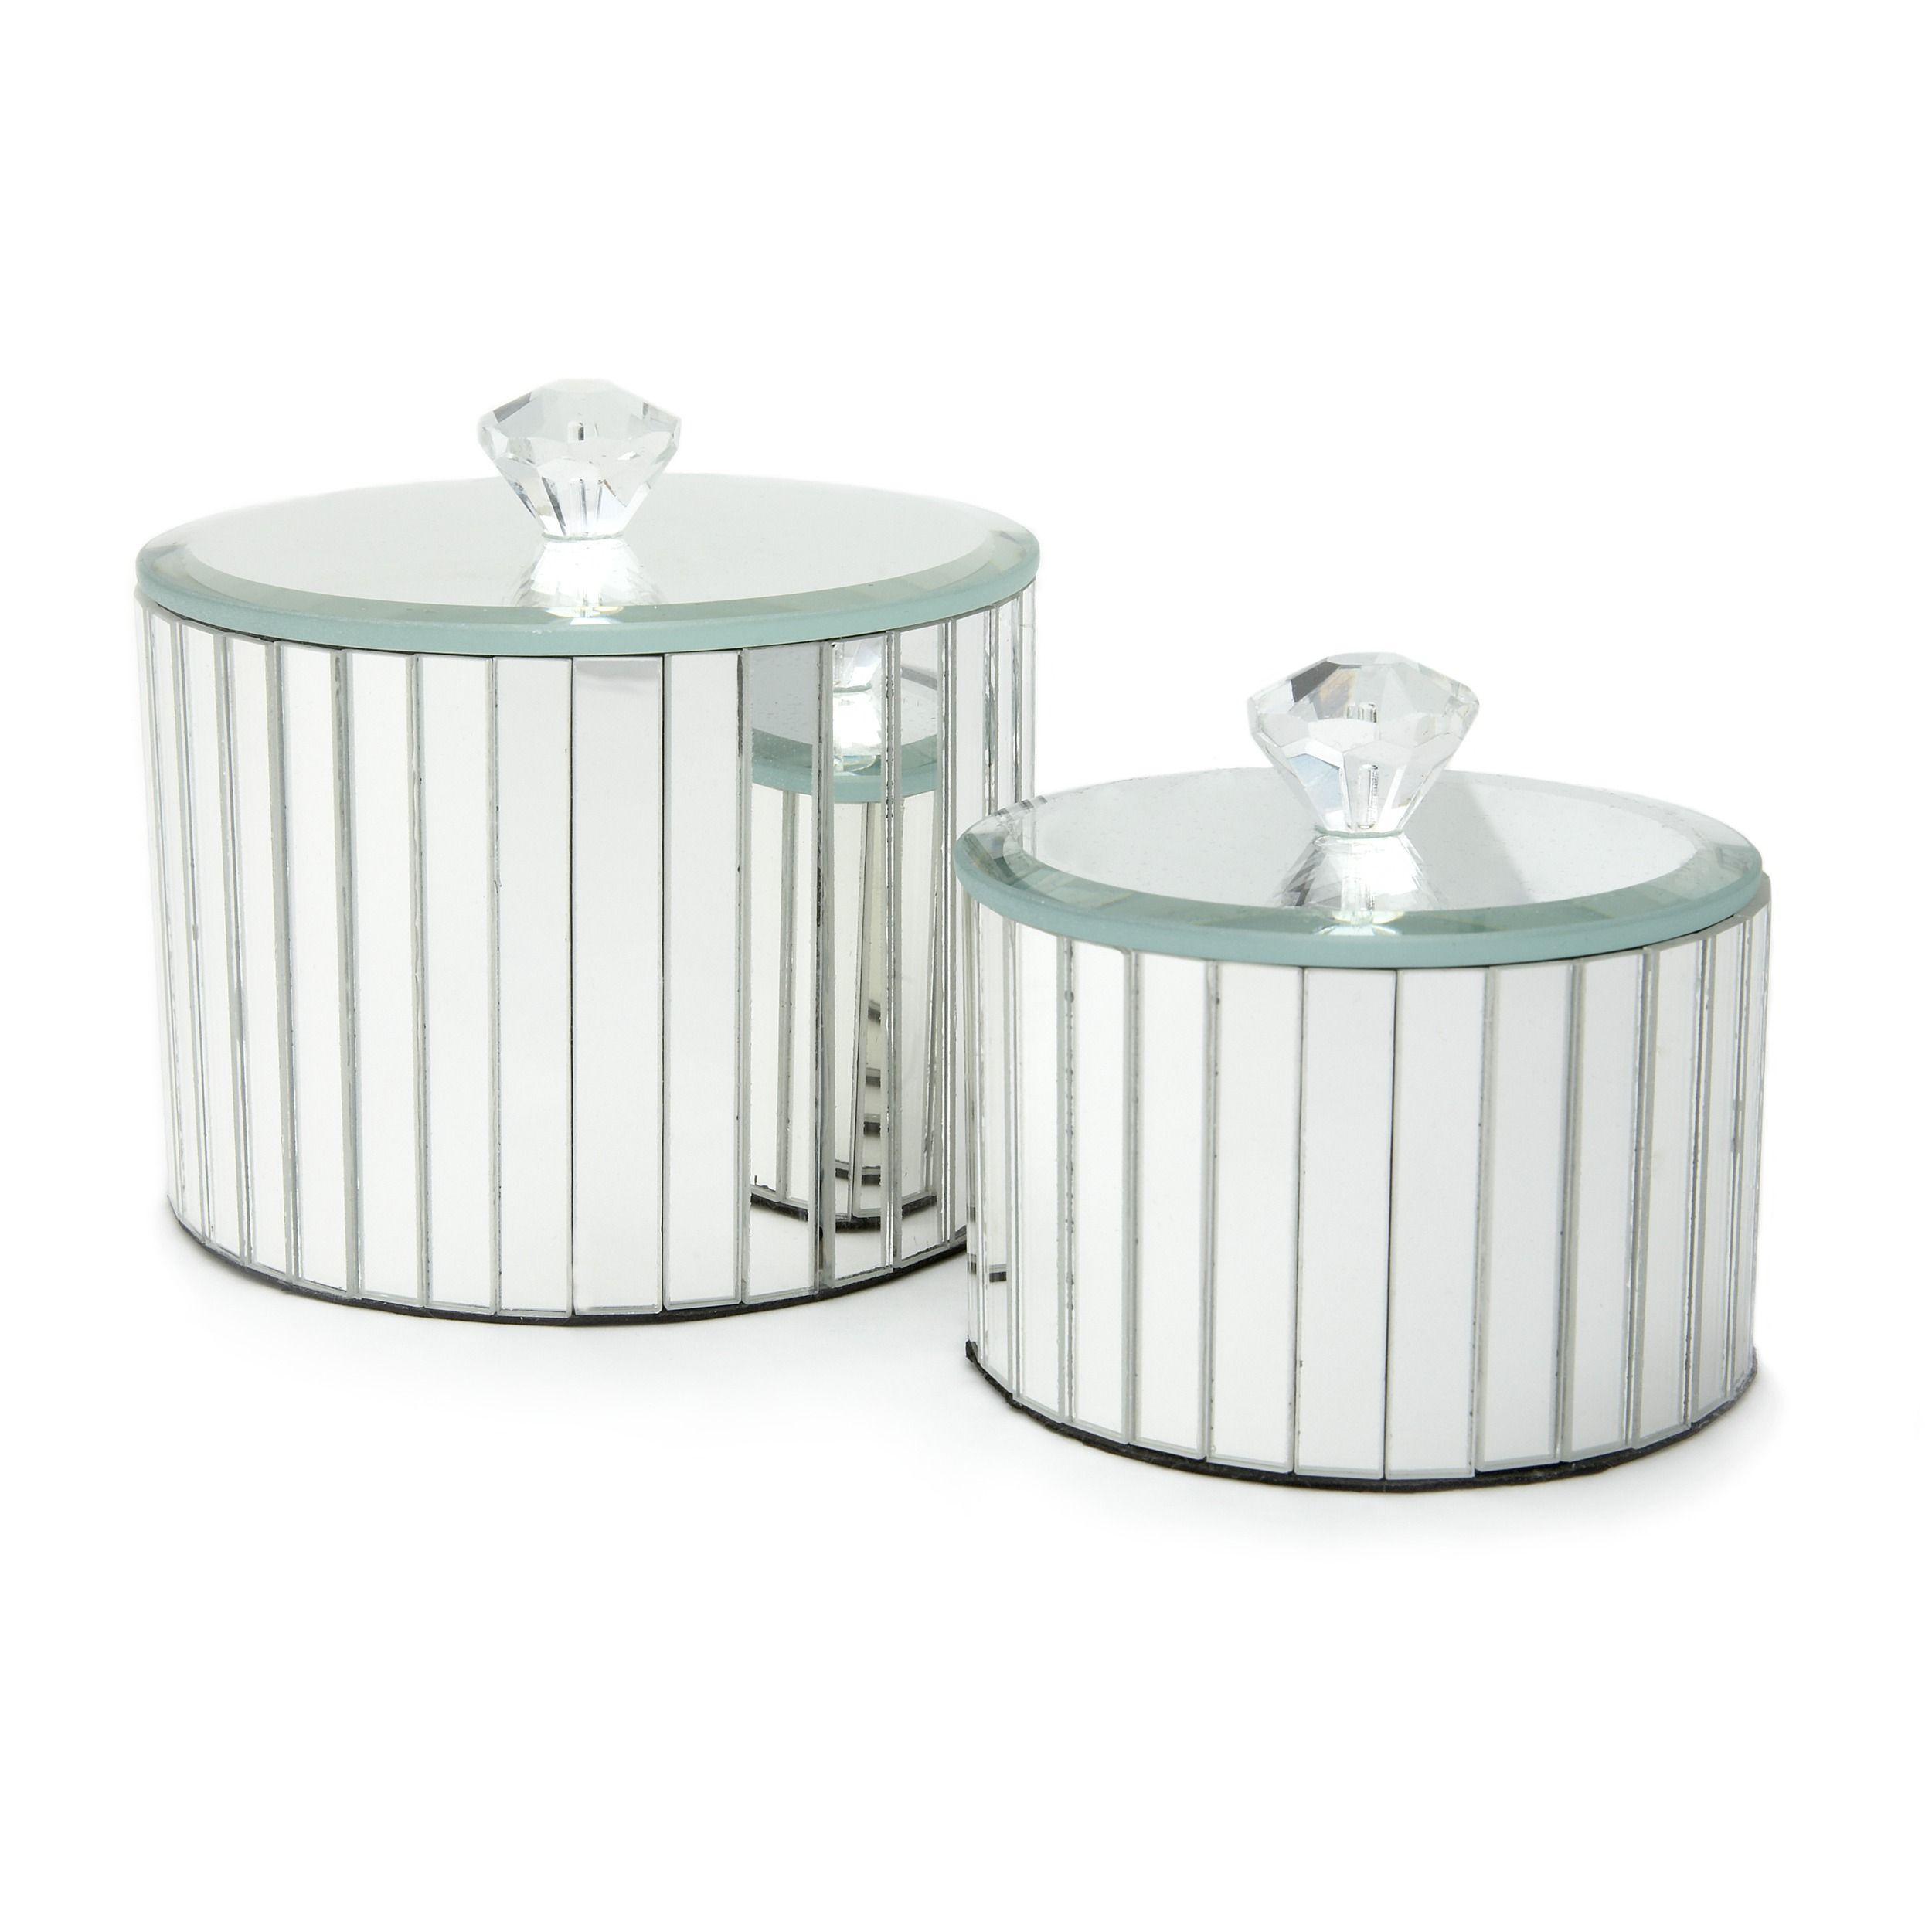 Decorative Round Boxes Set Of 2 Round Mirrored Trinket Boxes At Laura Ashley  Duckegg